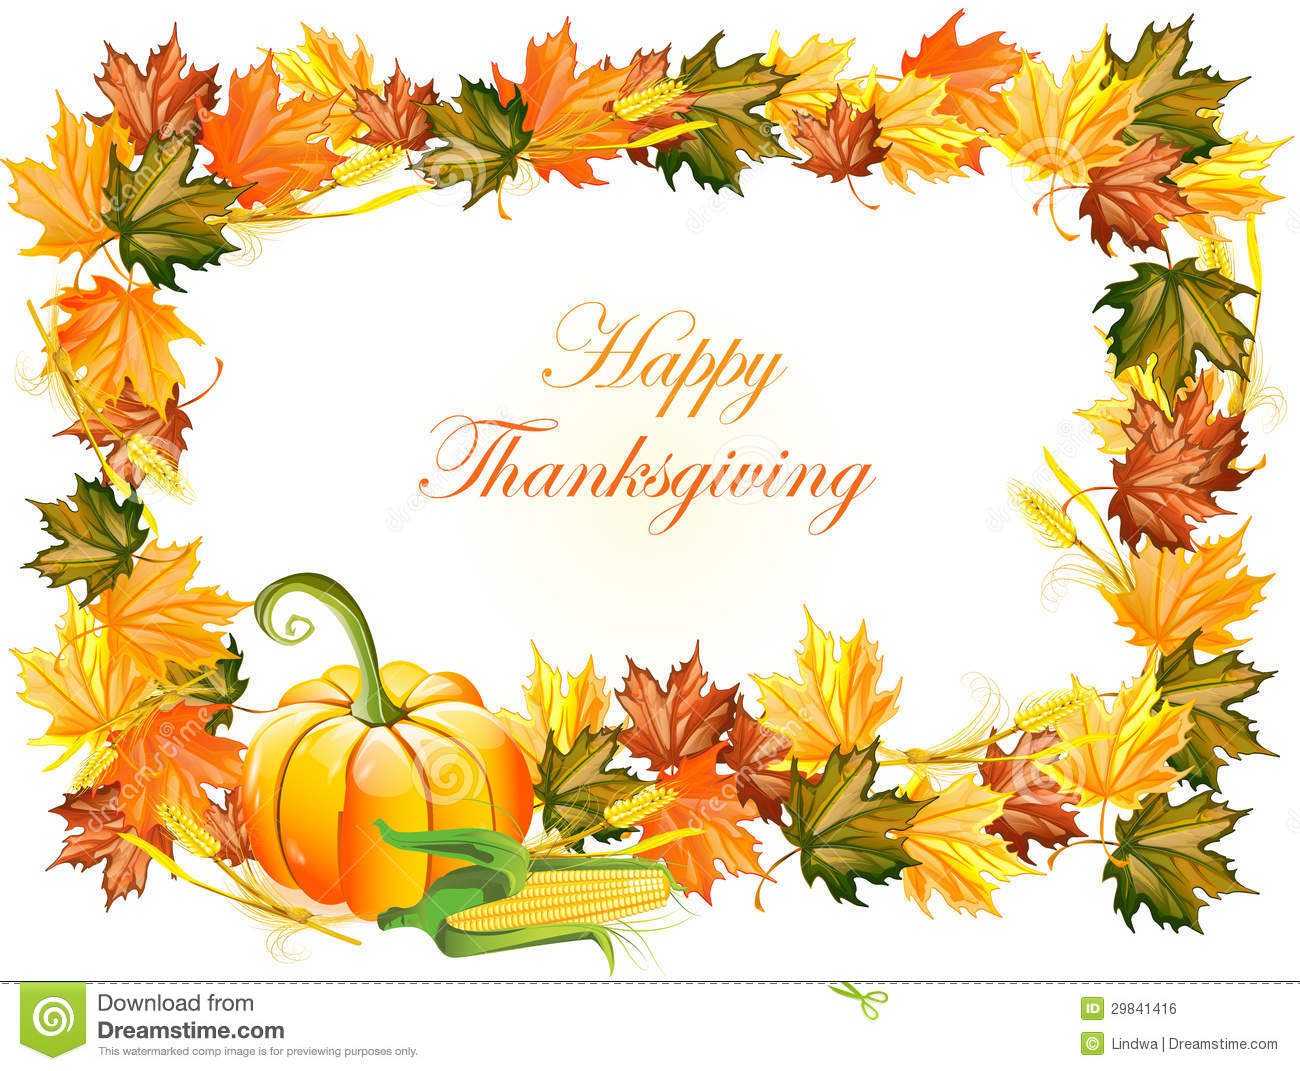 Fall Give Thanks Wallpaper Thanksgiving Day Background Royalty Free Stock Image